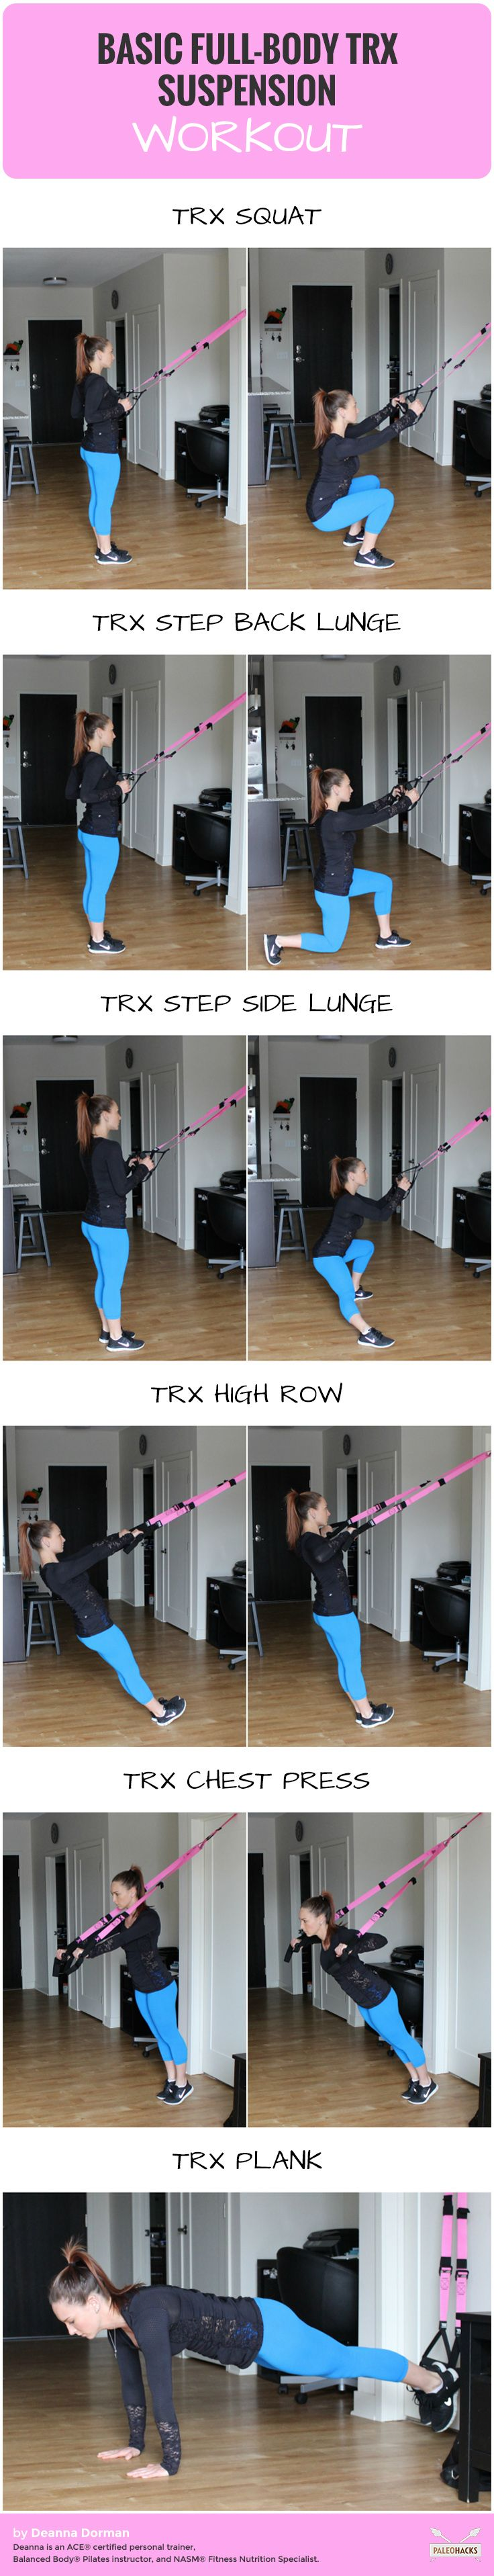 Why You Should Start TRX Suspension Training (Plus a Basic TRX Workout!)